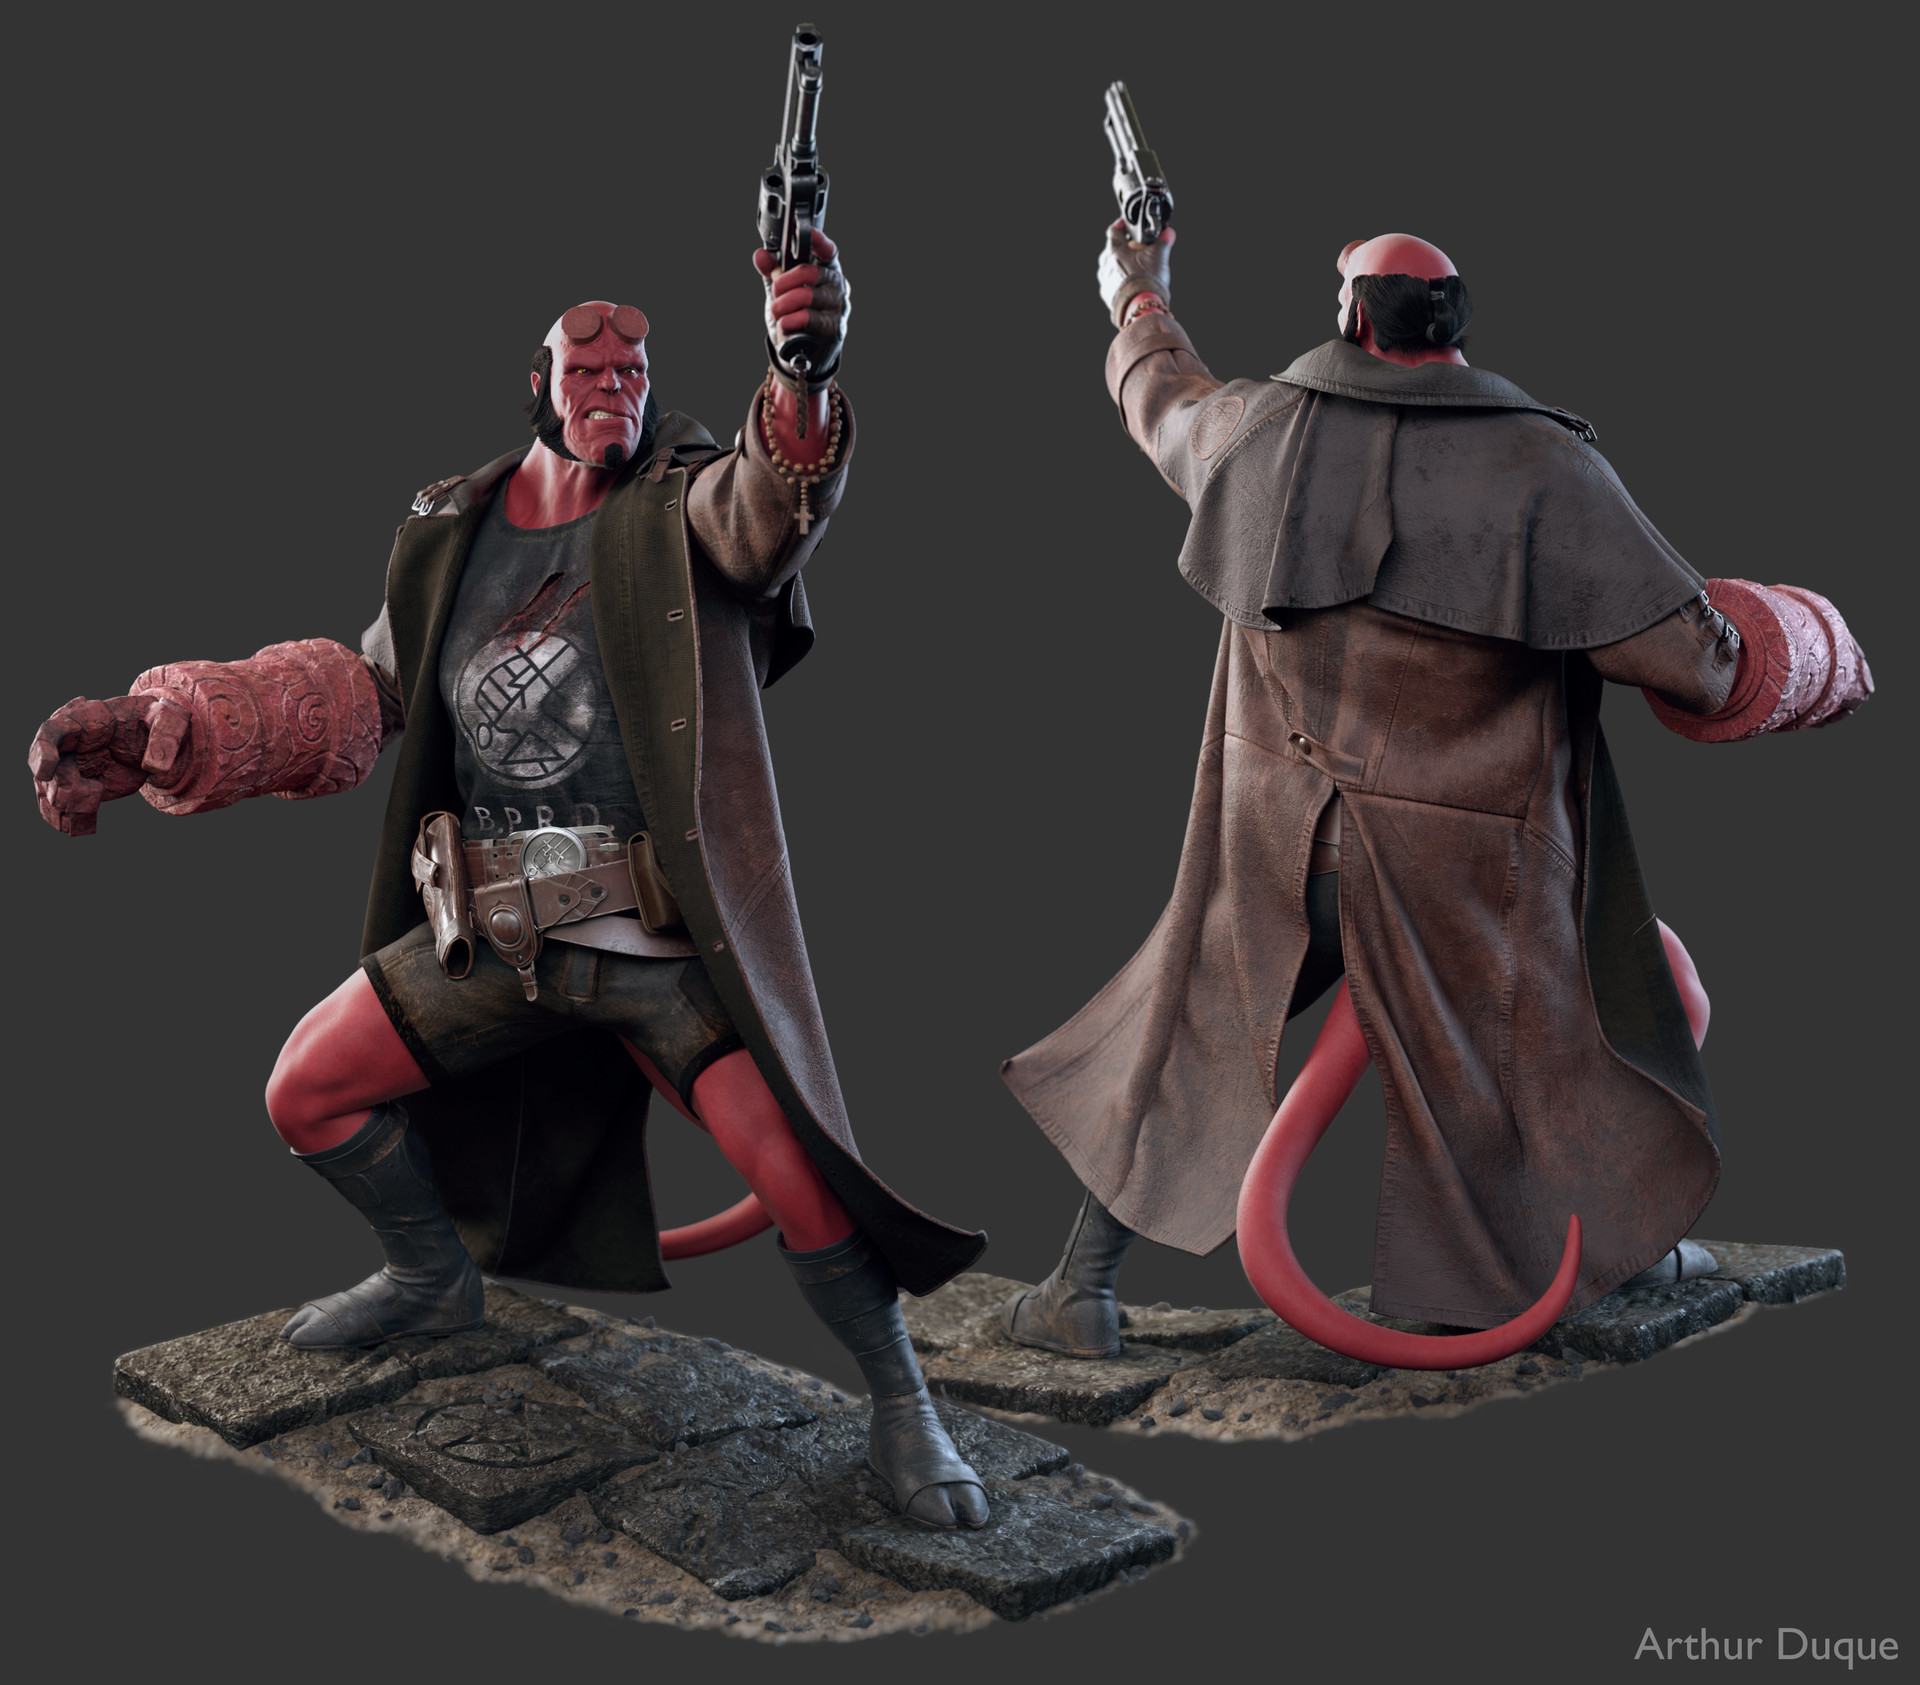 Arthur duque hellboy pose 01